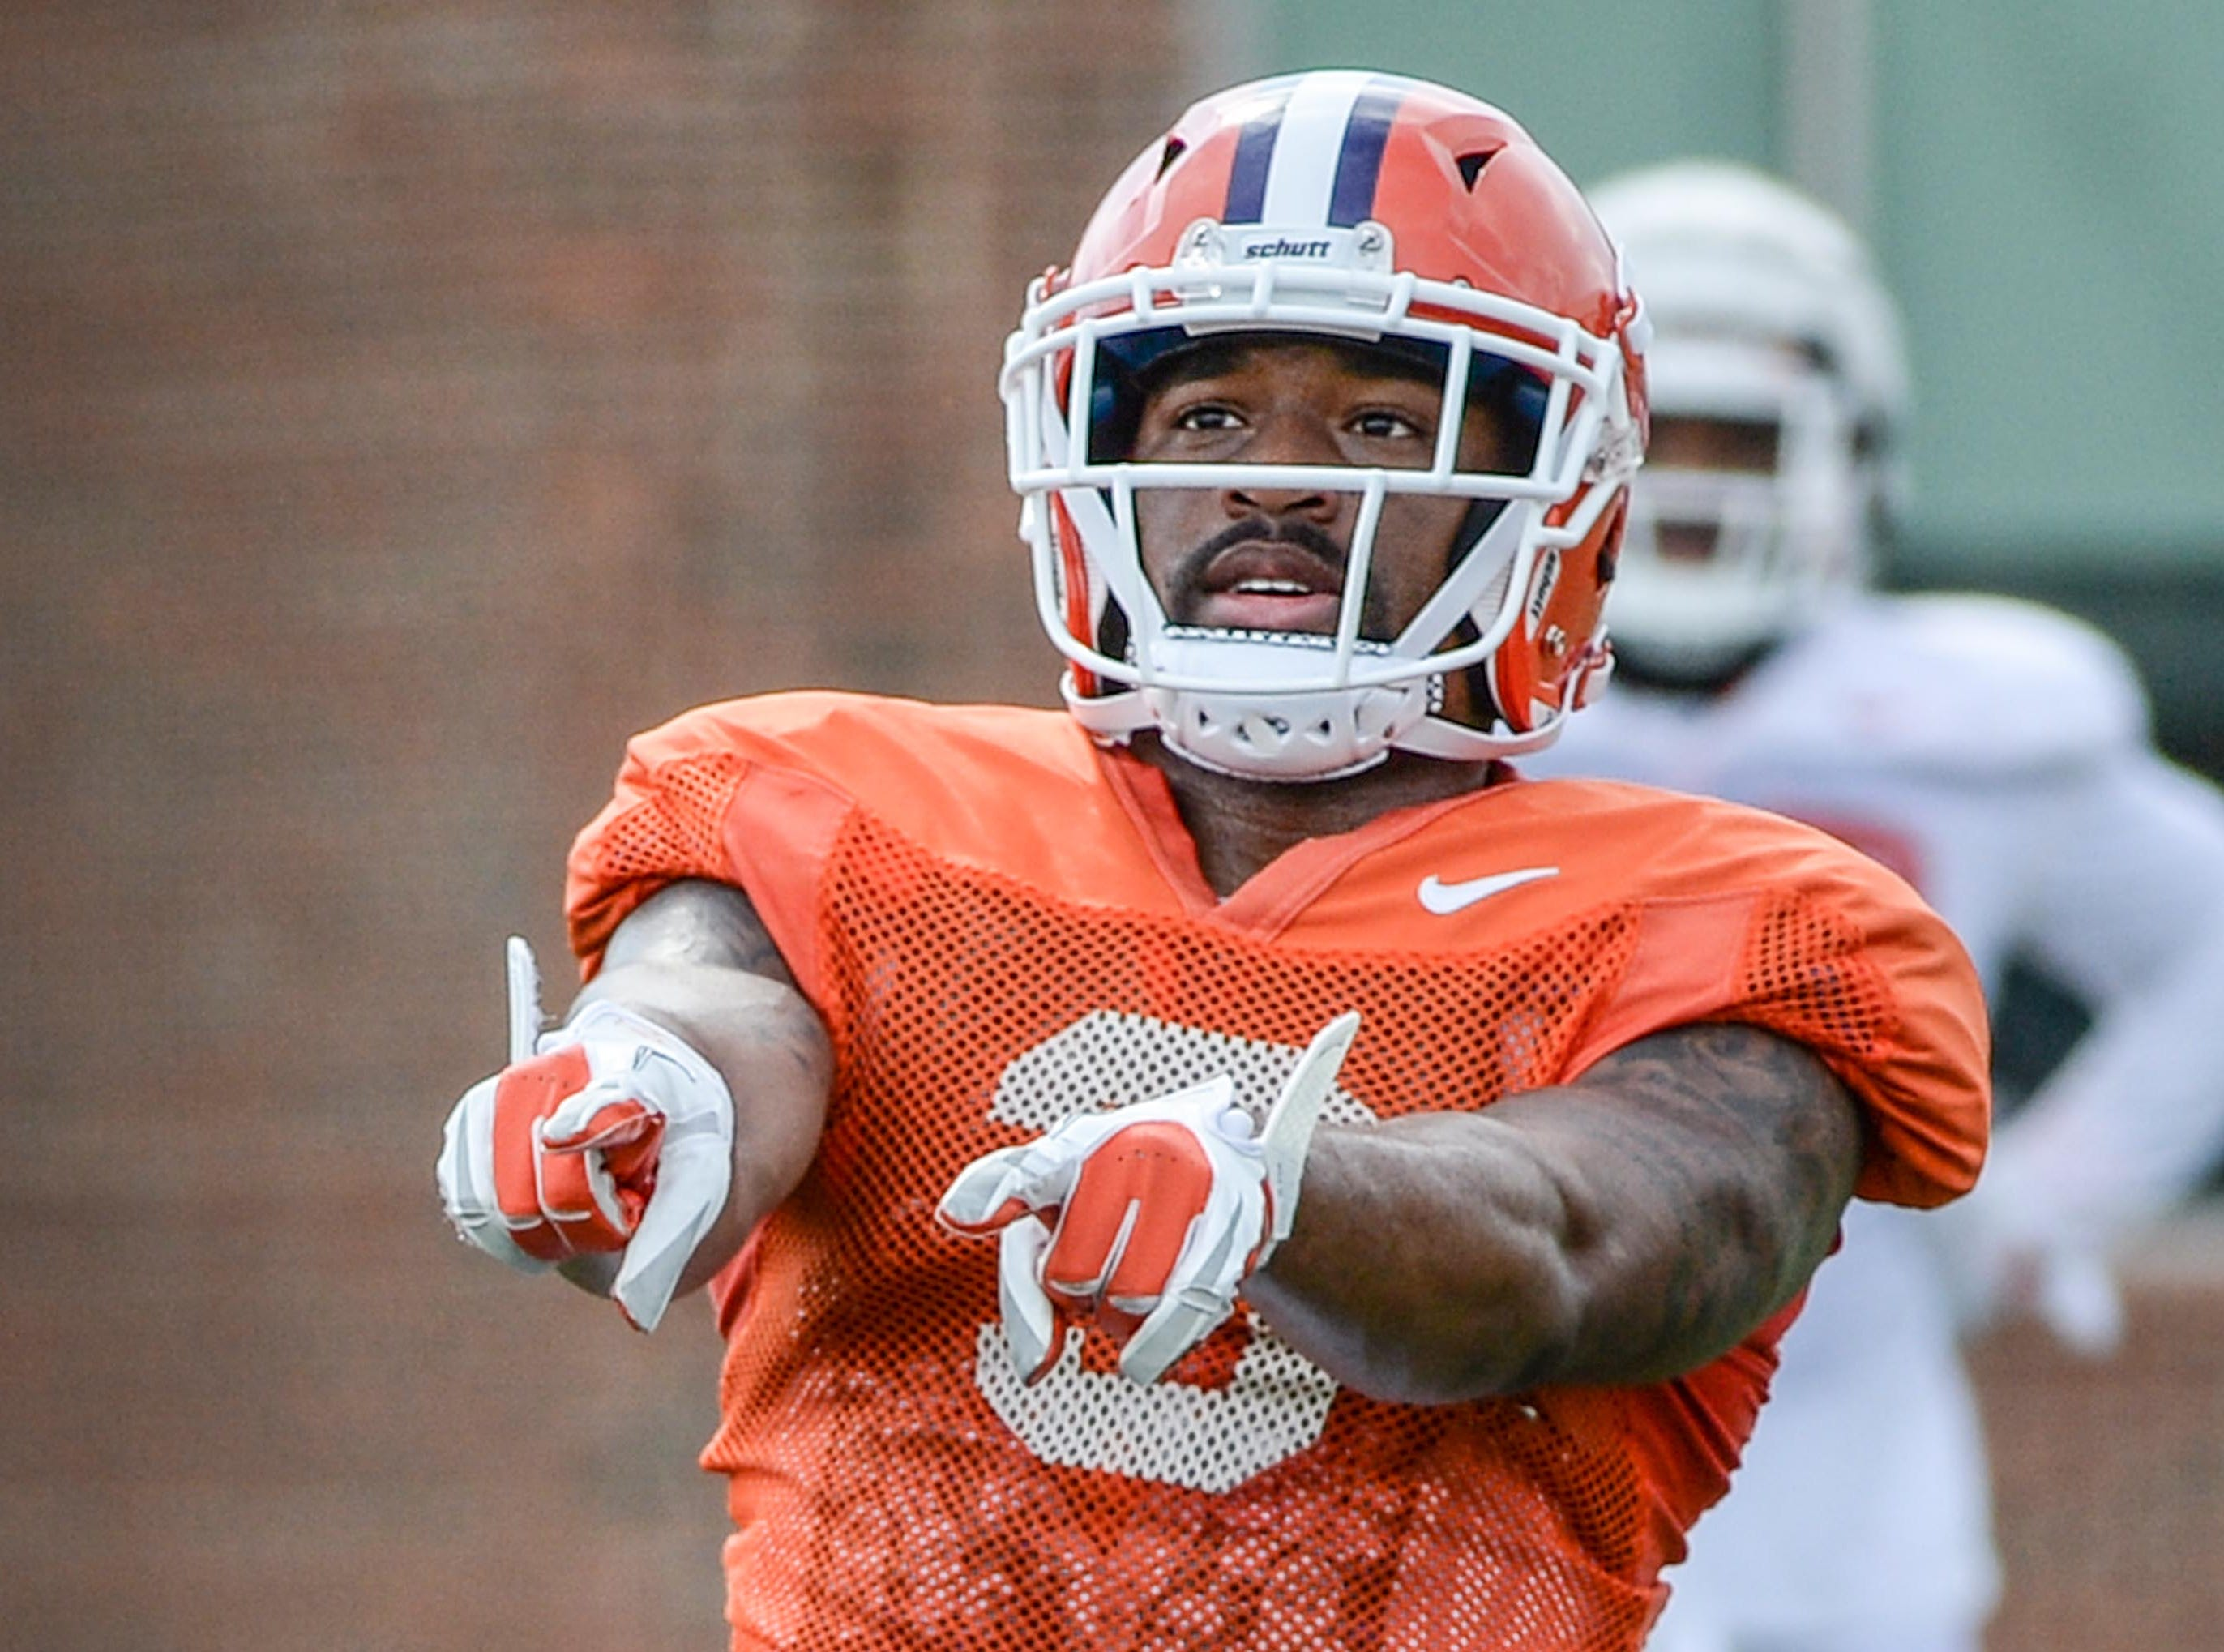 Clemson wide receiver Amari Rodgers (3) during fall practice in Clemson on Wednesday.